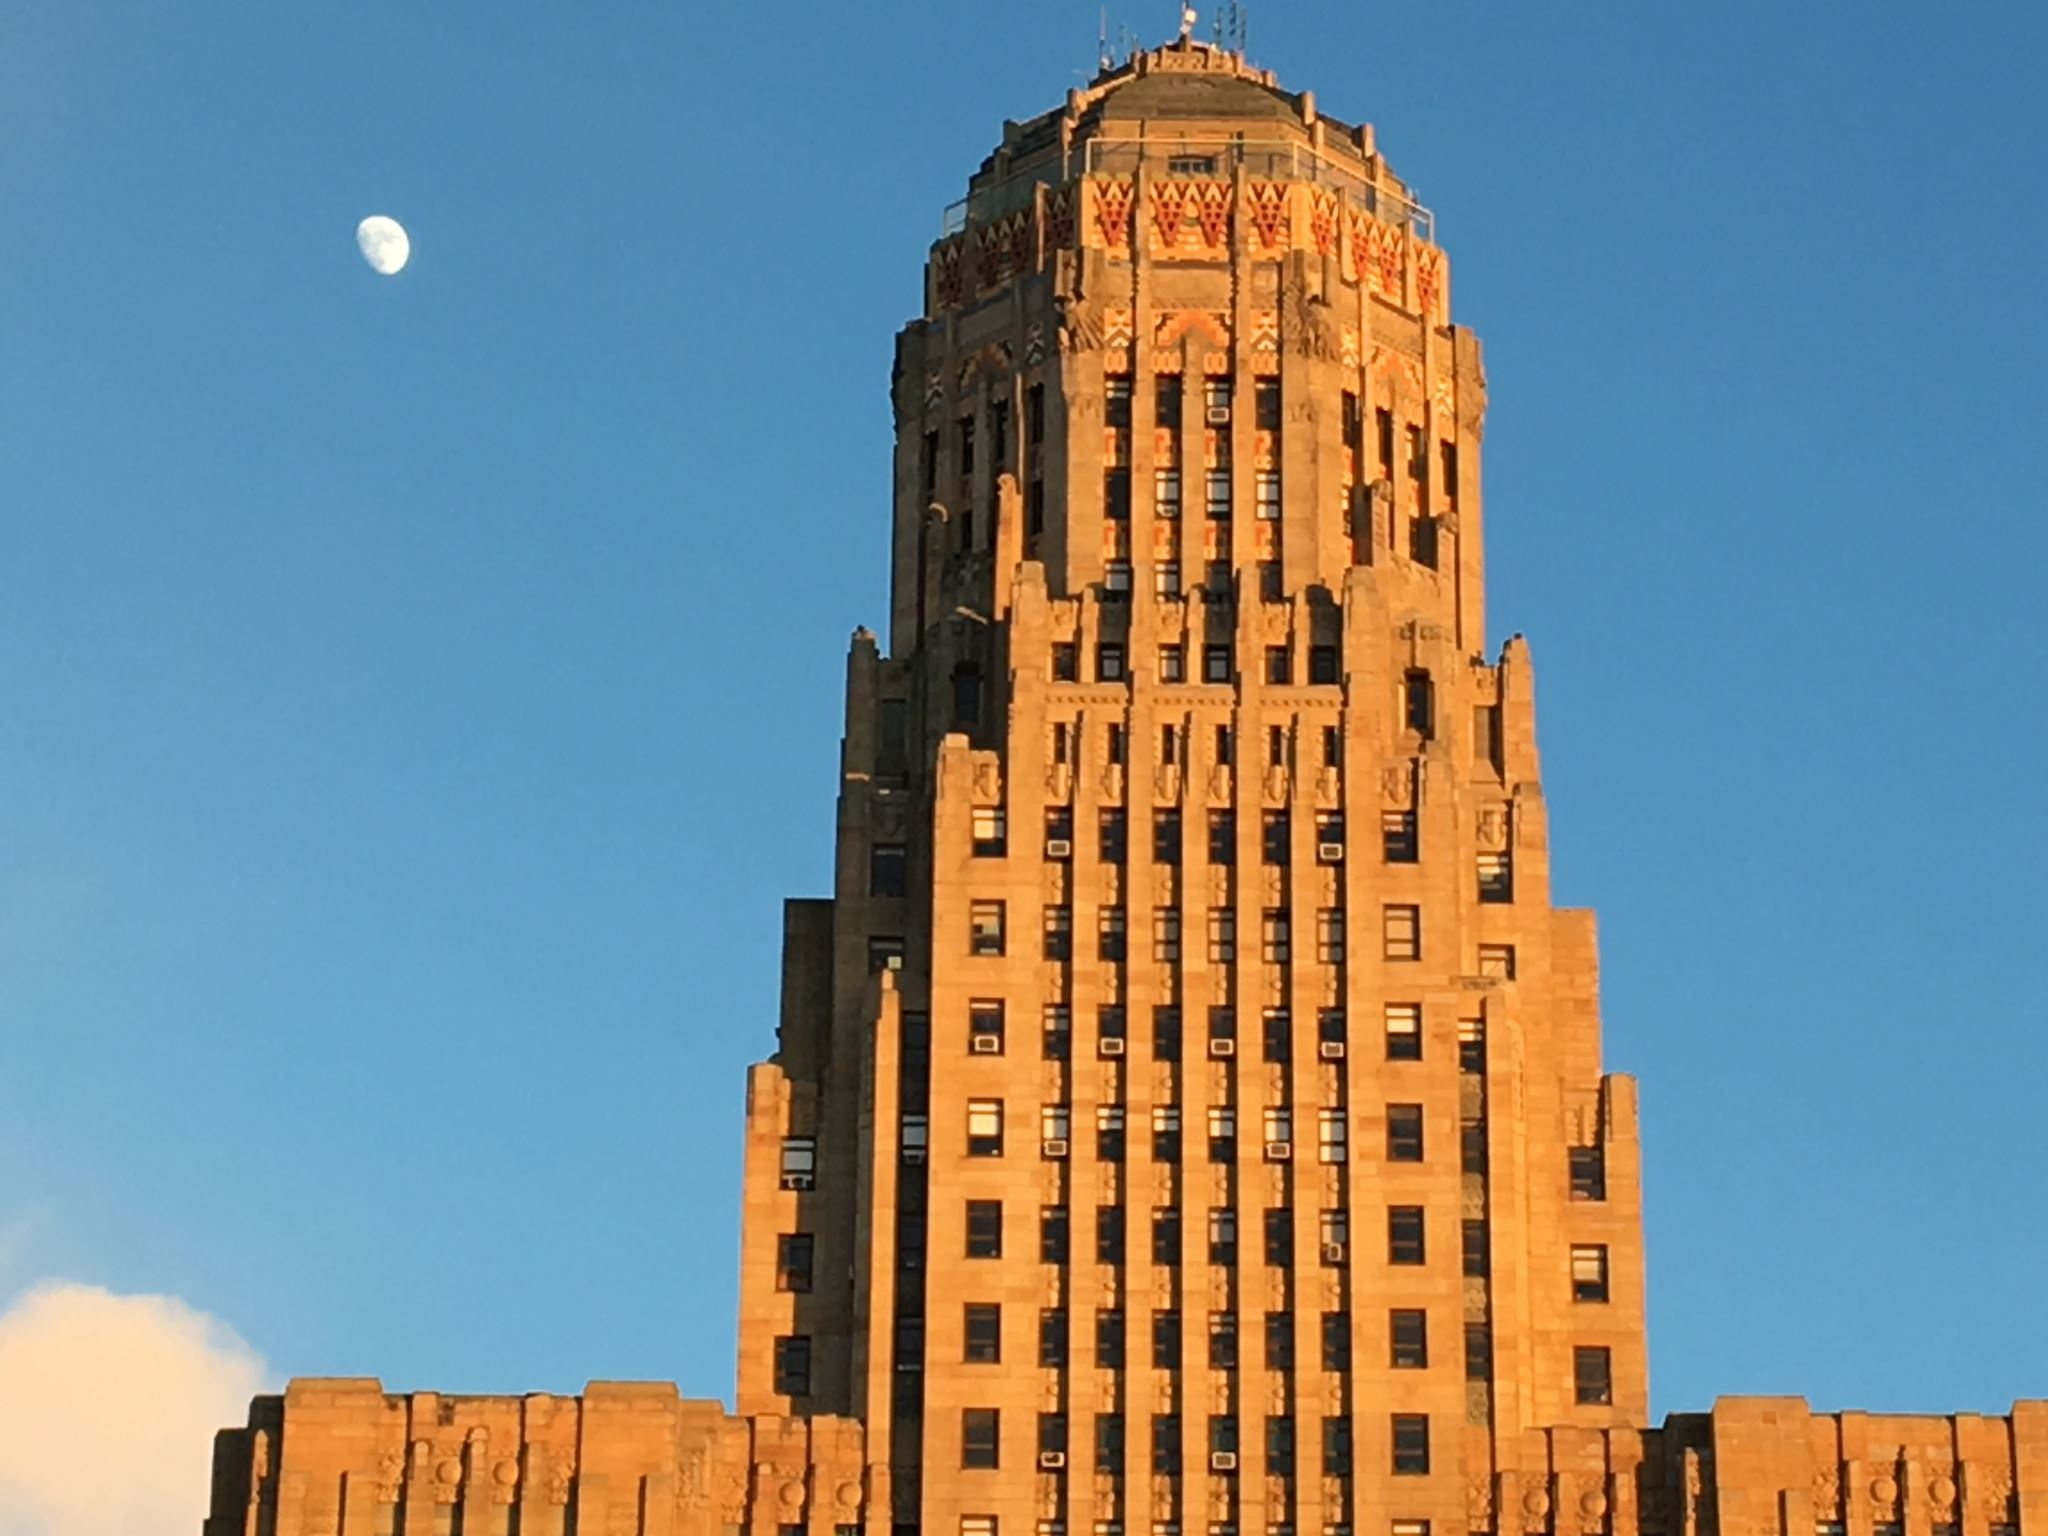 City Hall and Moon